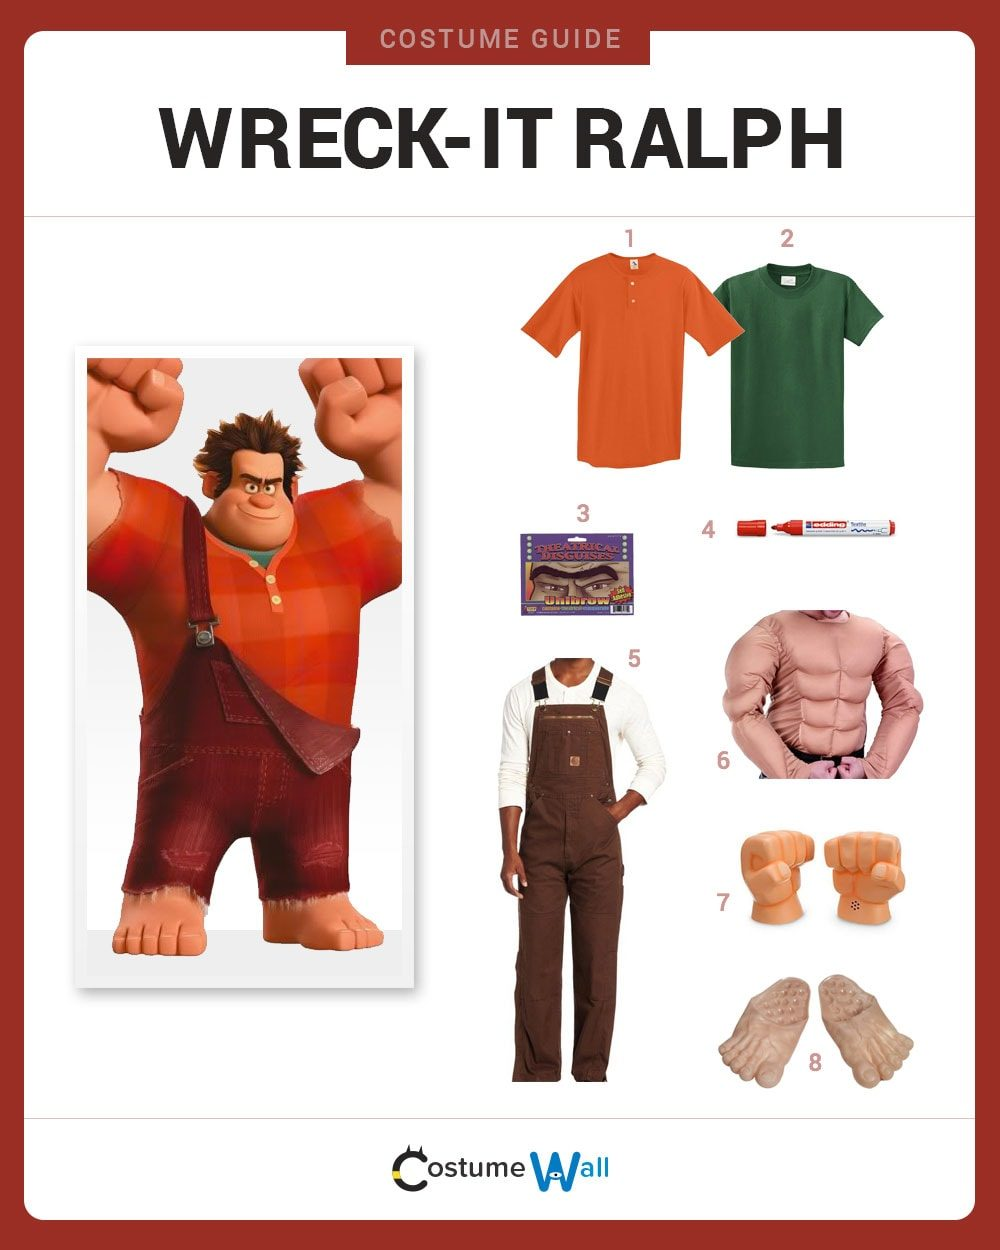 Wreck-It Ralph Costume Guide